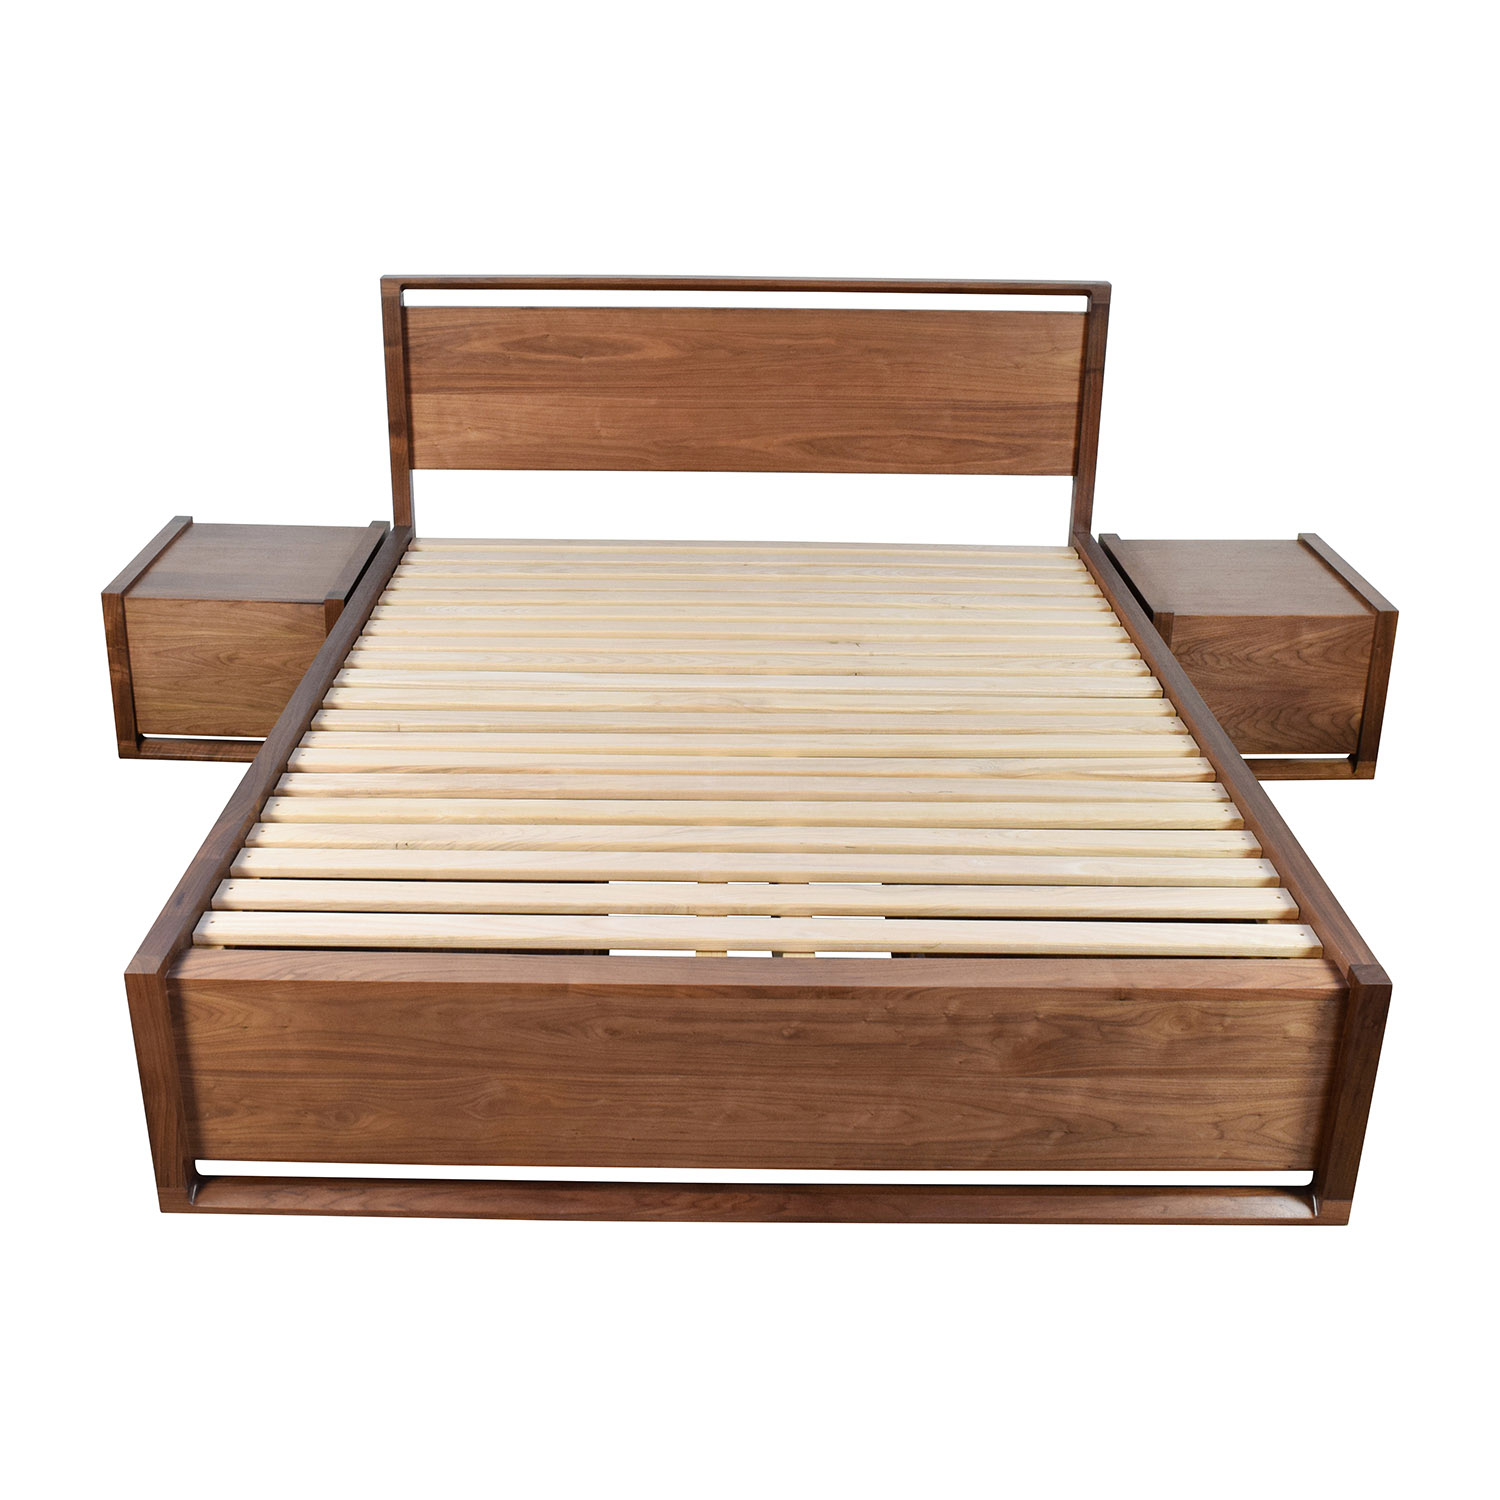 design within reach design within reach queen bed frame with end tables nj - Used Bed Frames